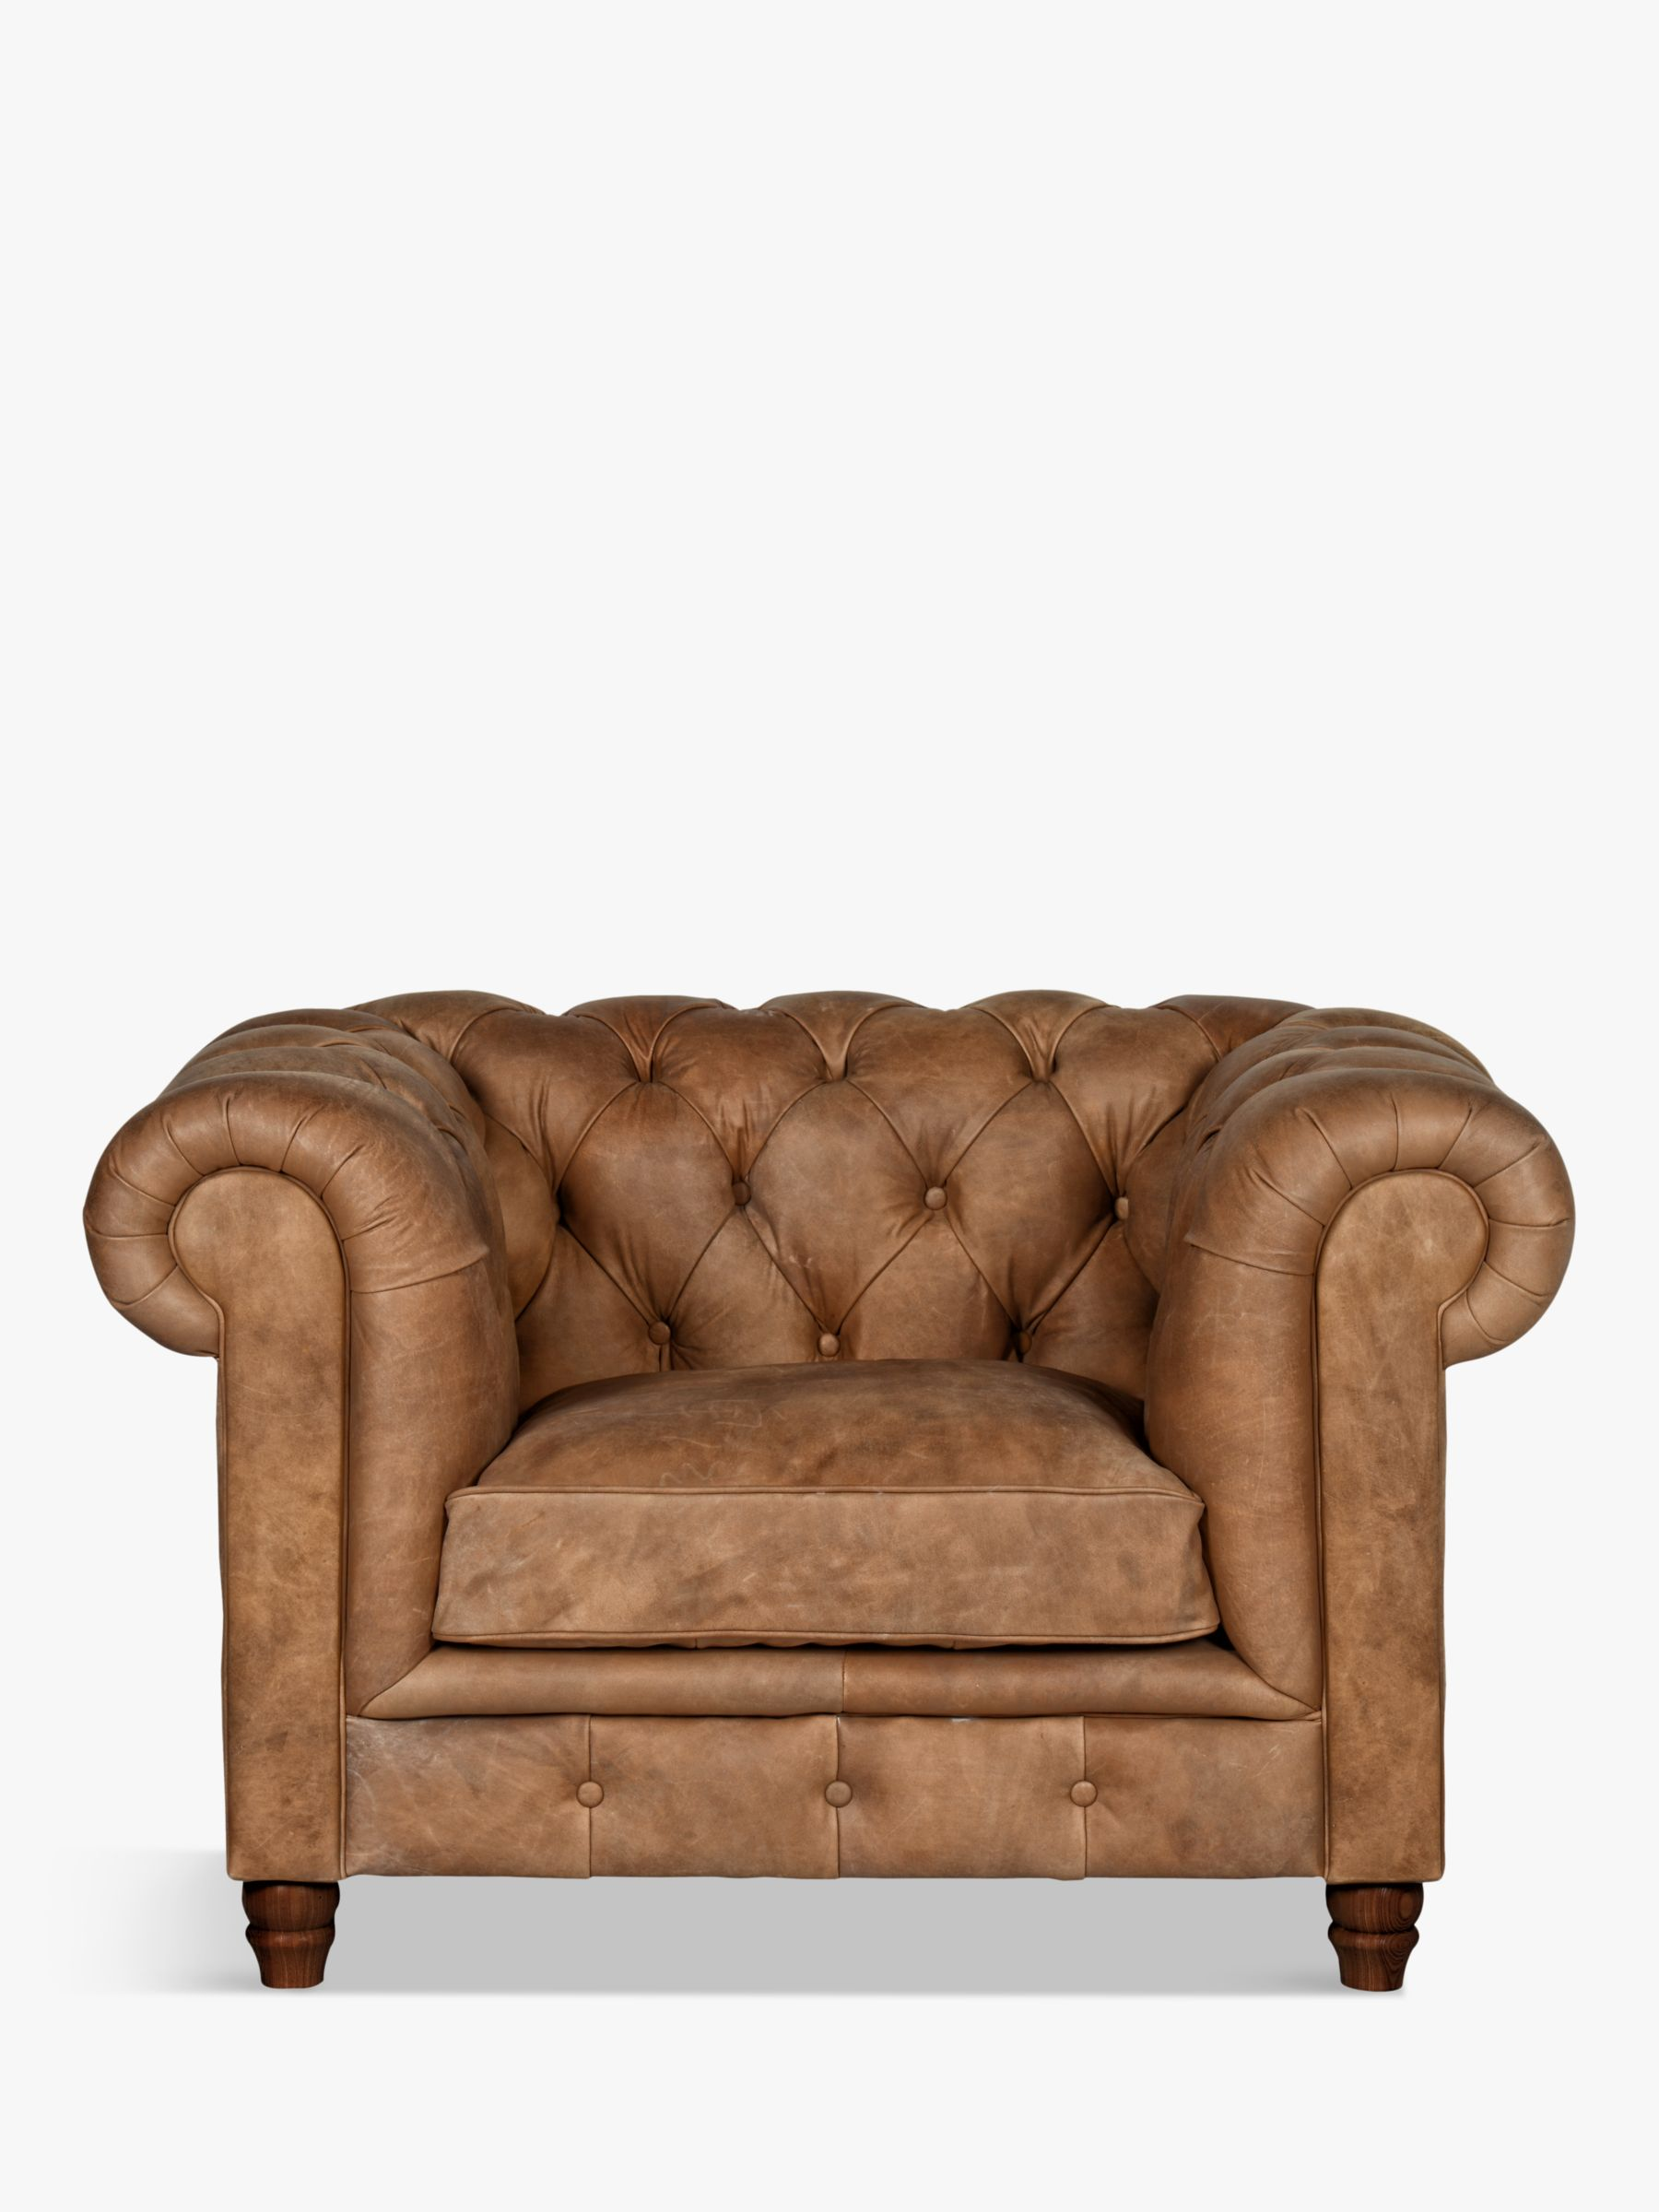 Halo Halo Earle Chesterfield Leather Armchair